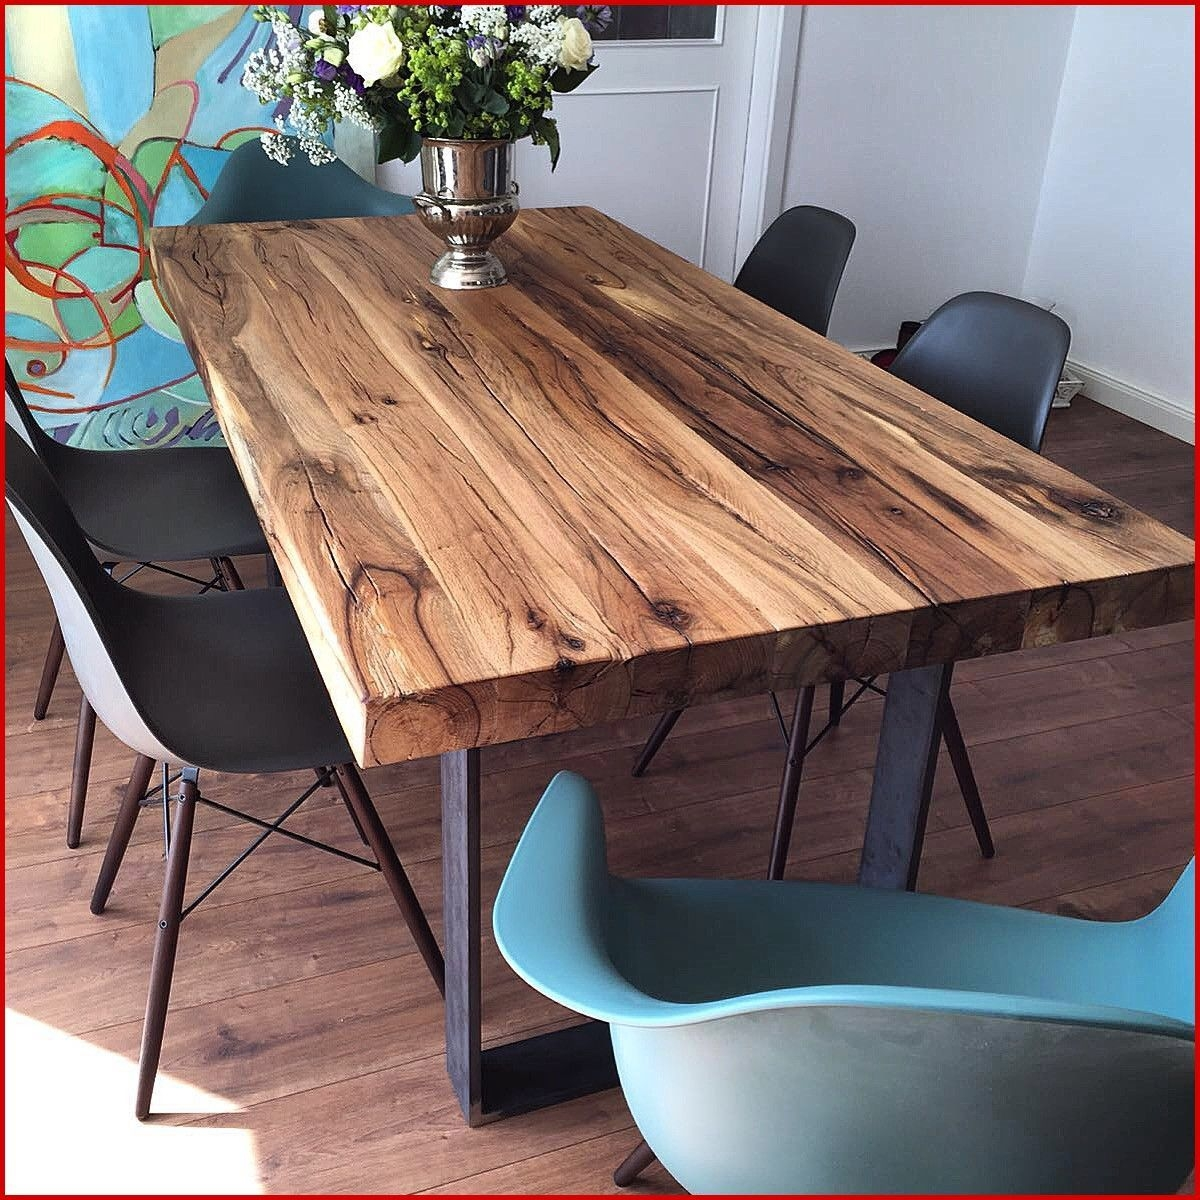 Charming Diy Wooden Dining Table Design Ideas For You23